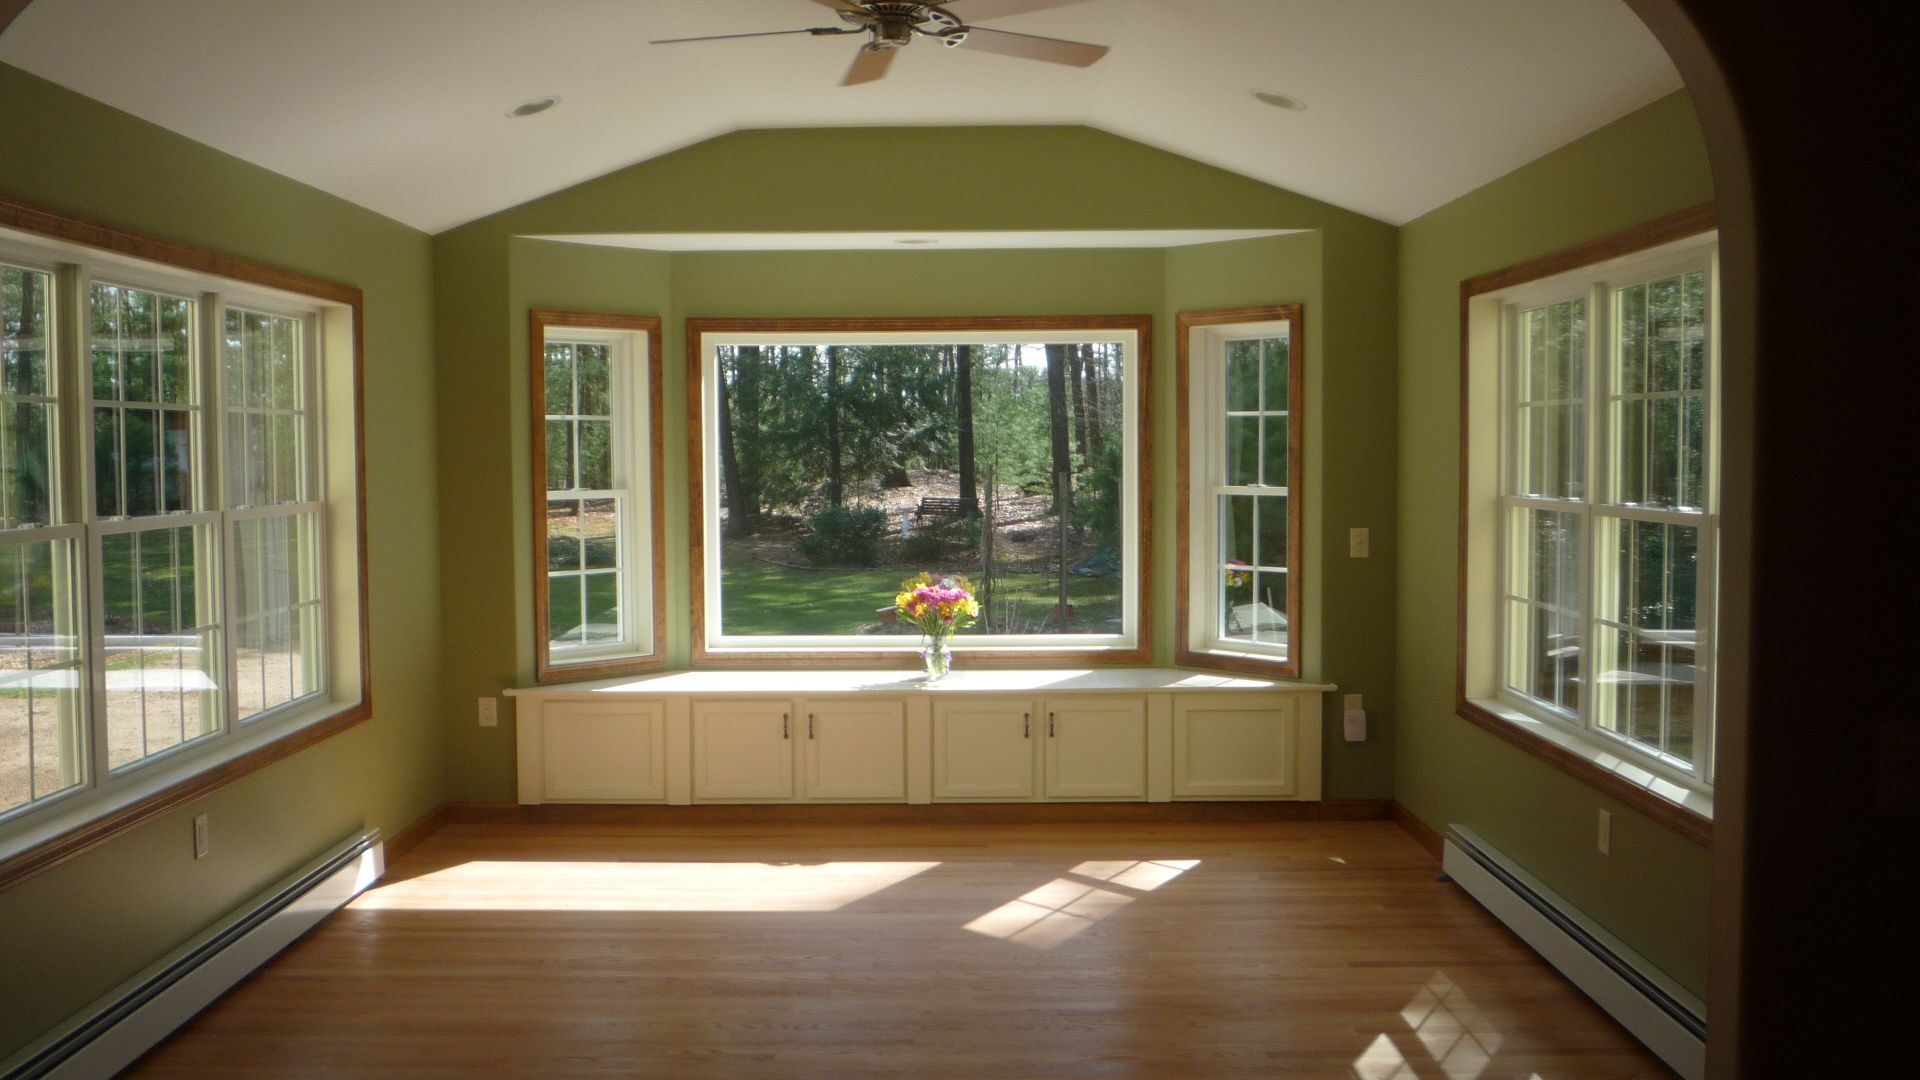 Family Room Designs Yahoo Search Results Family Room Addition Family Room Room Additions